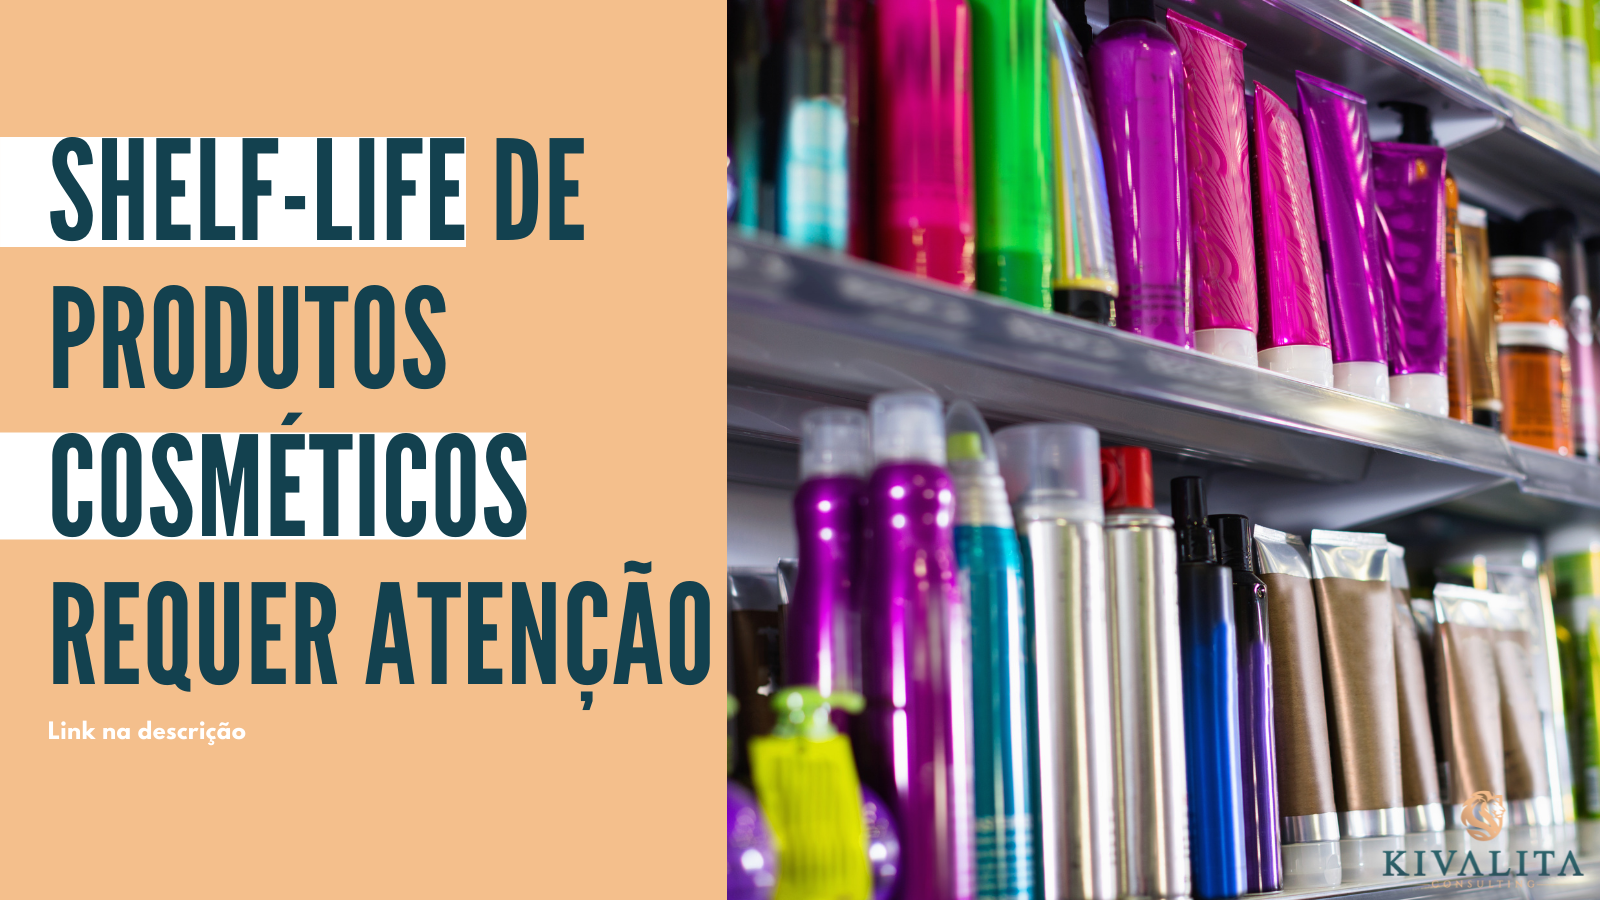 Shelf-life of cosmetic products requires attention